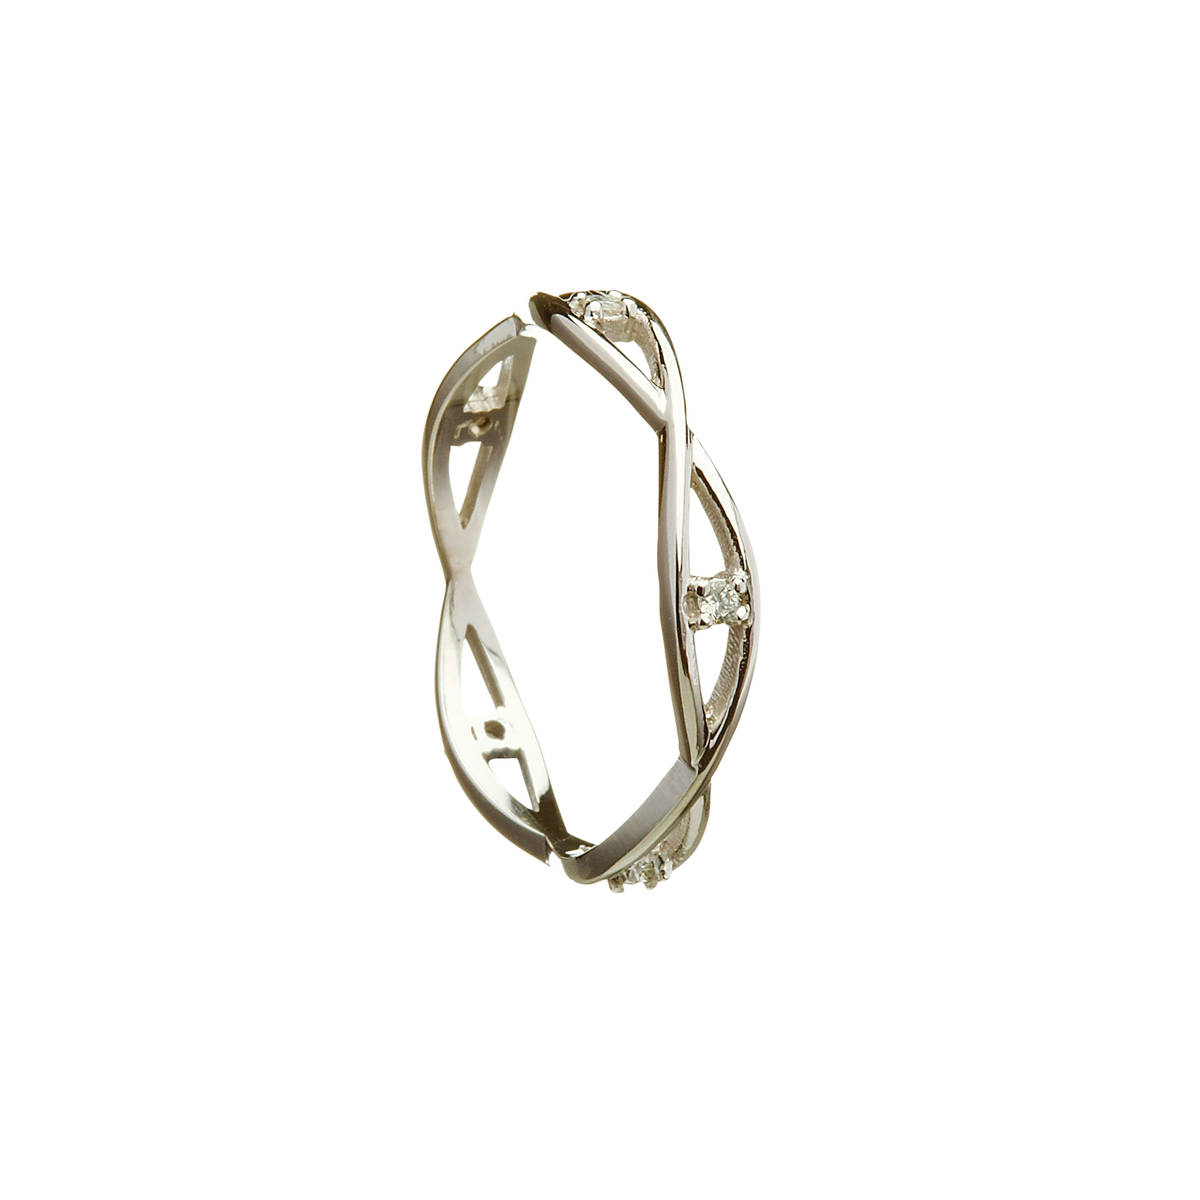 Palladium lady's two lines entwined Celtic wedding ring with diamonds.(0.08ct)A beautifully delicate looking ring which will be admired by all.